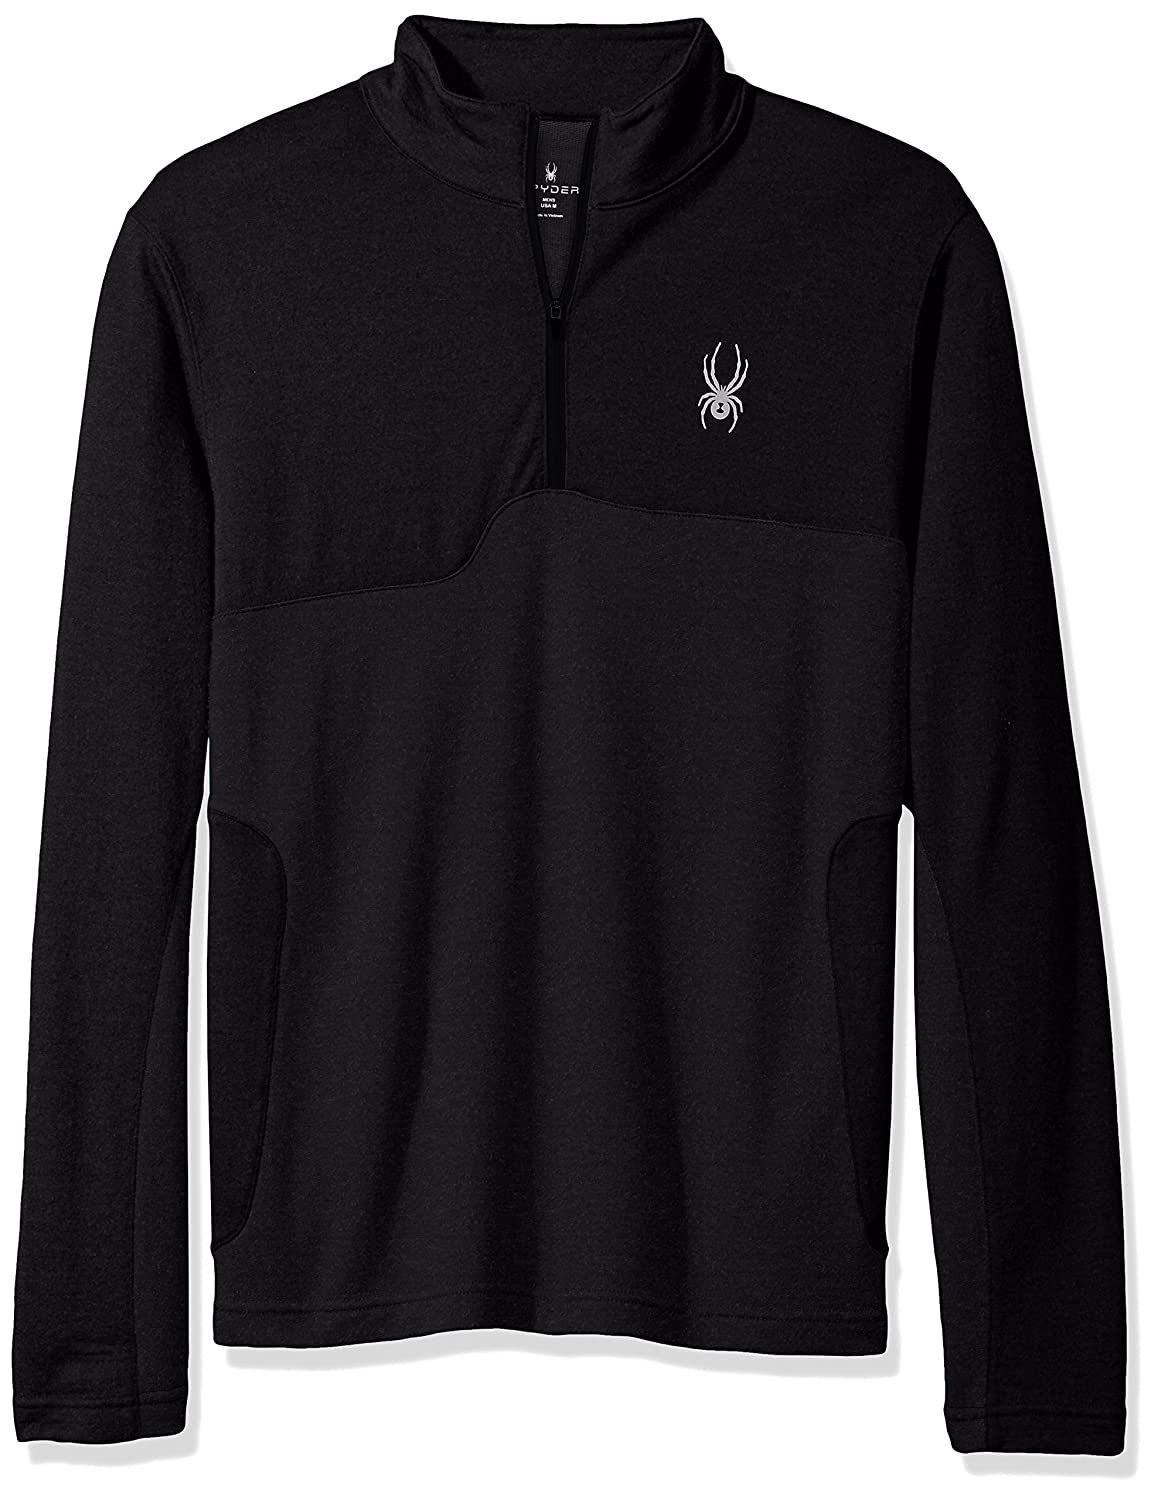 Spyder Herren Pinnacle Merino 1/4 Zip Baselayer Top